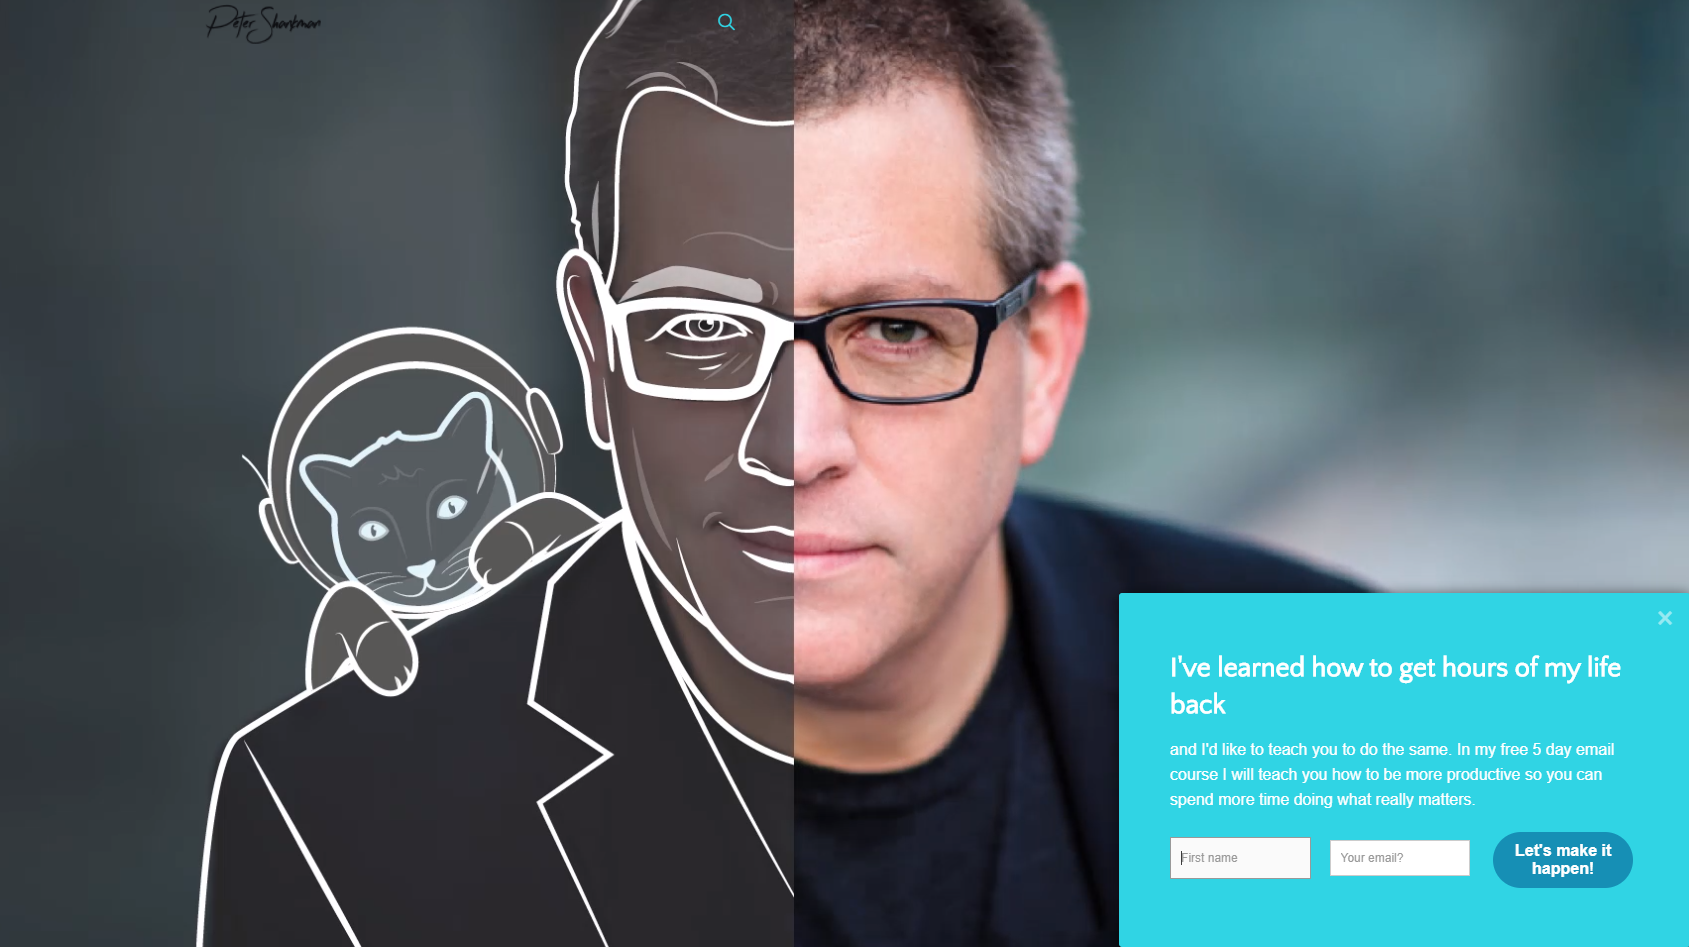 Peter Shankman's lead capture popup